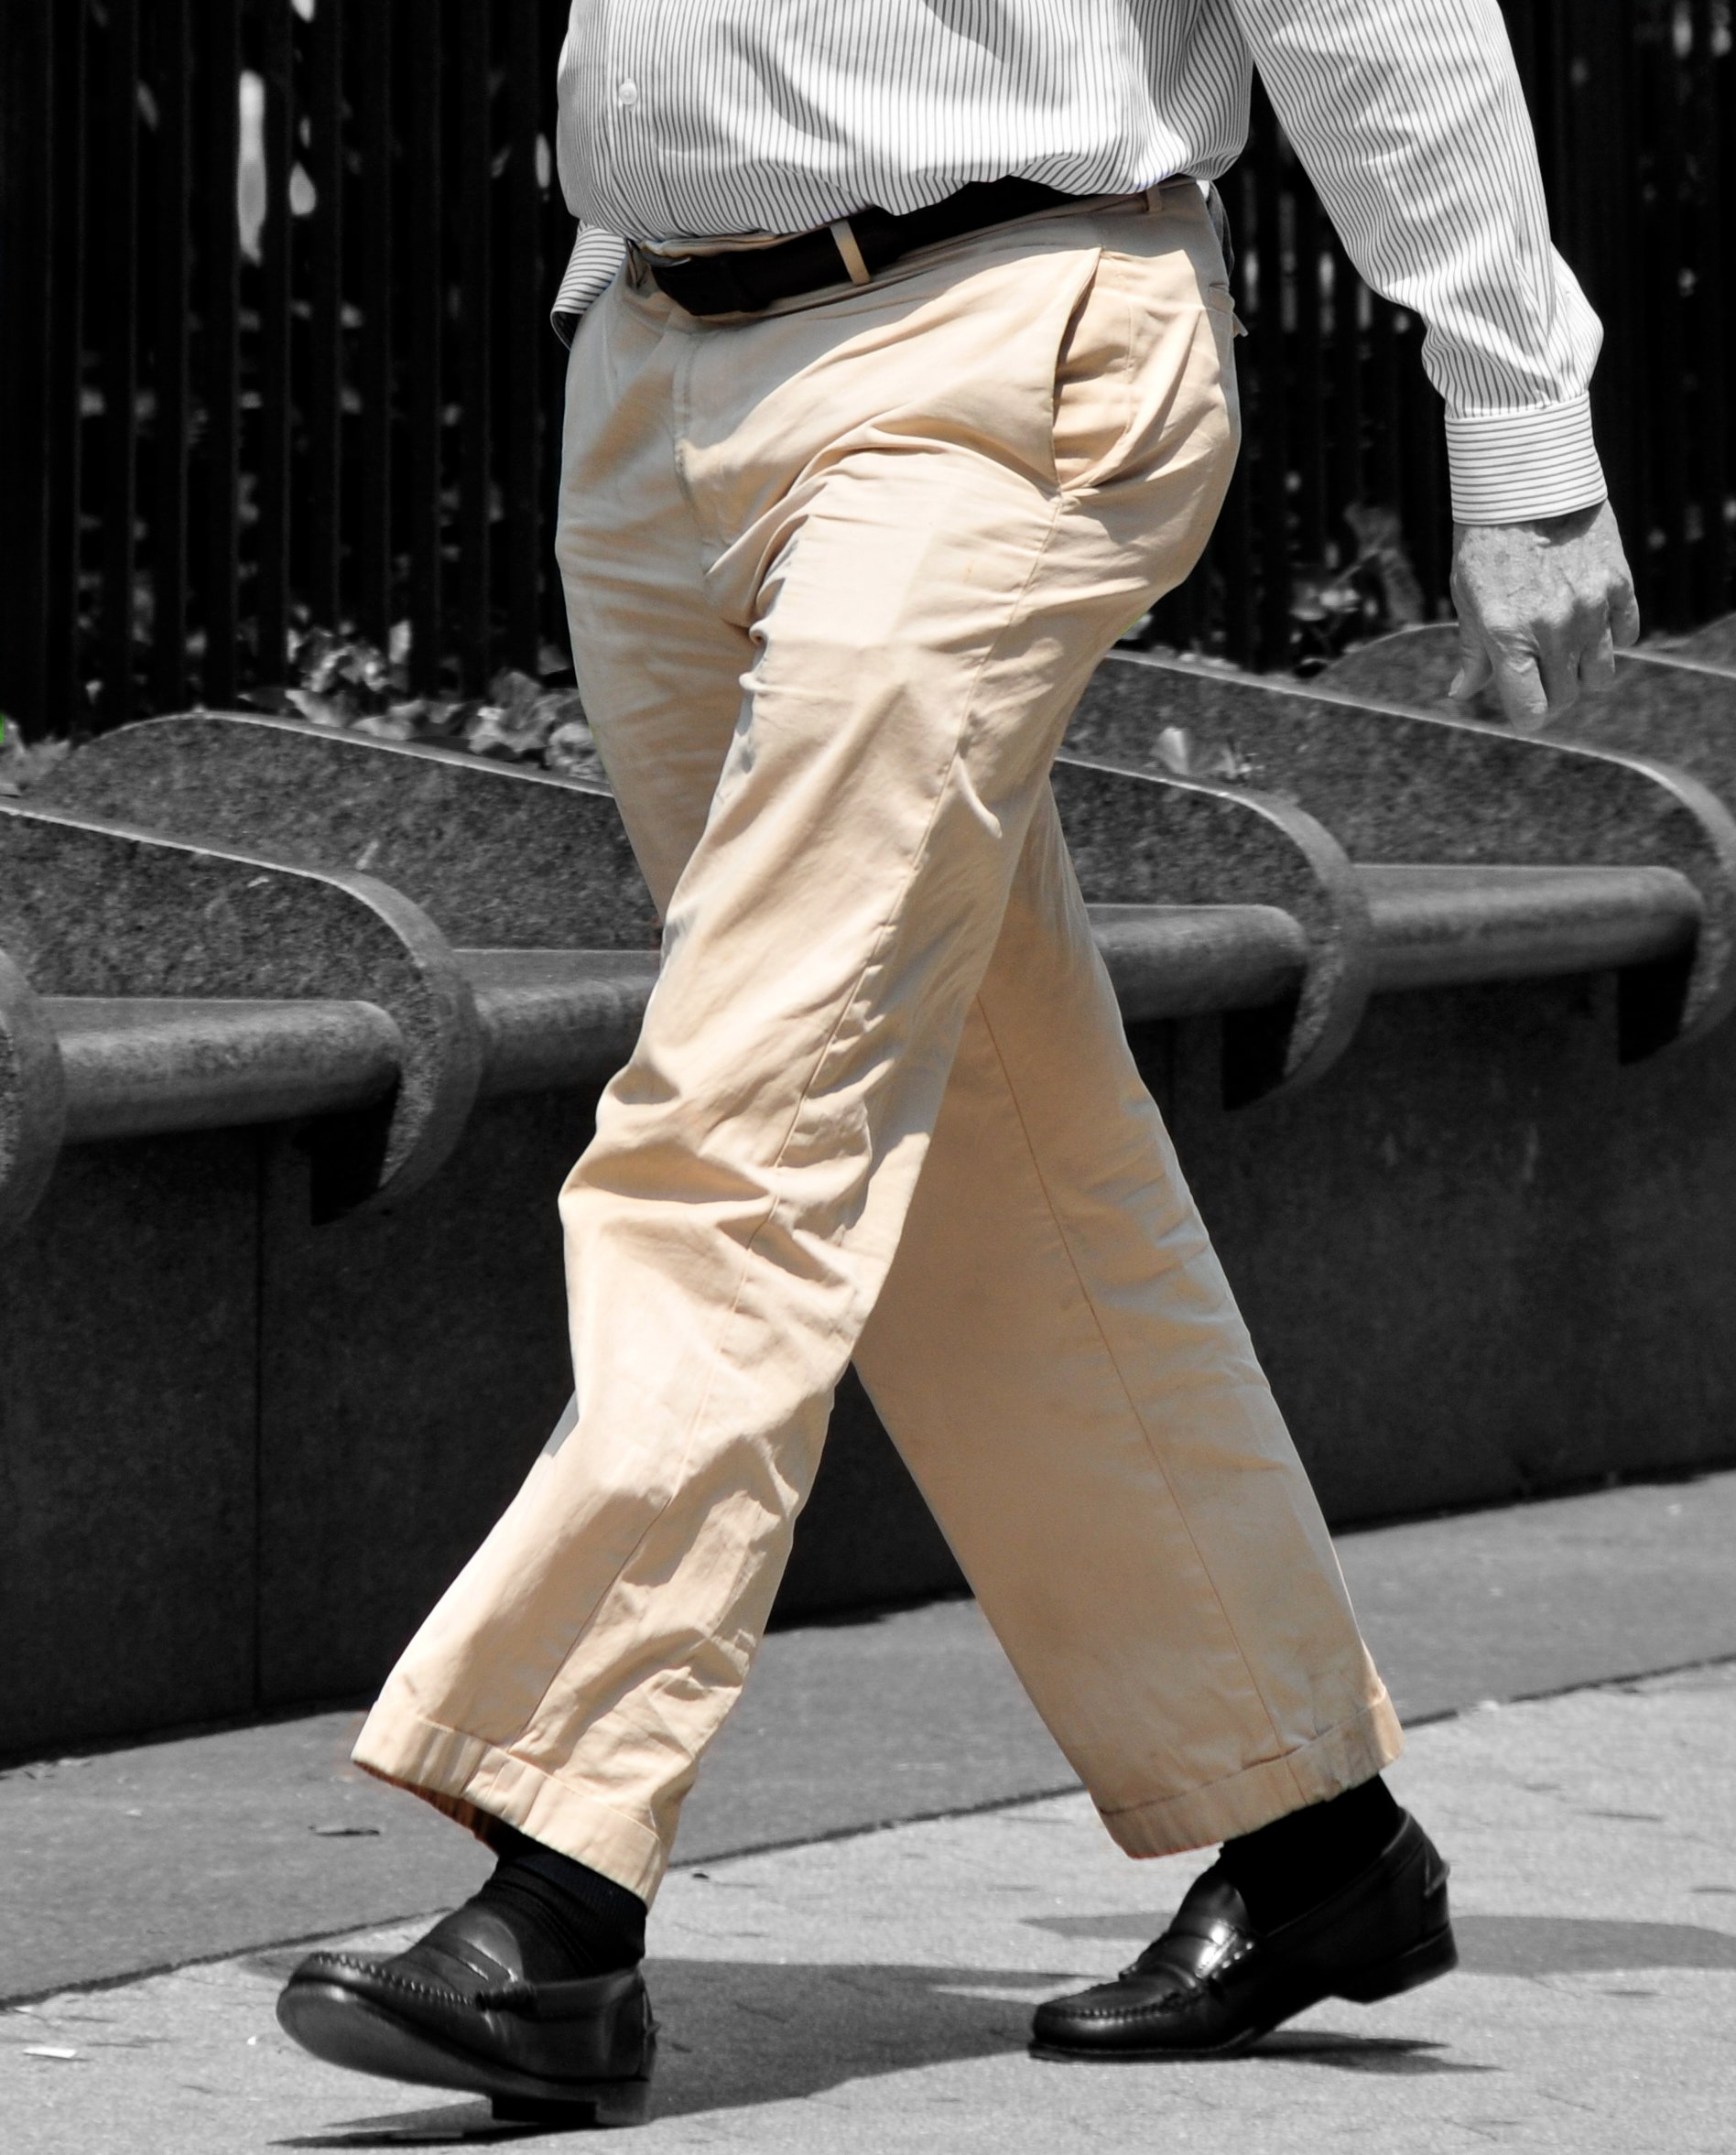 57382e8589 Trousers - Wikipedia